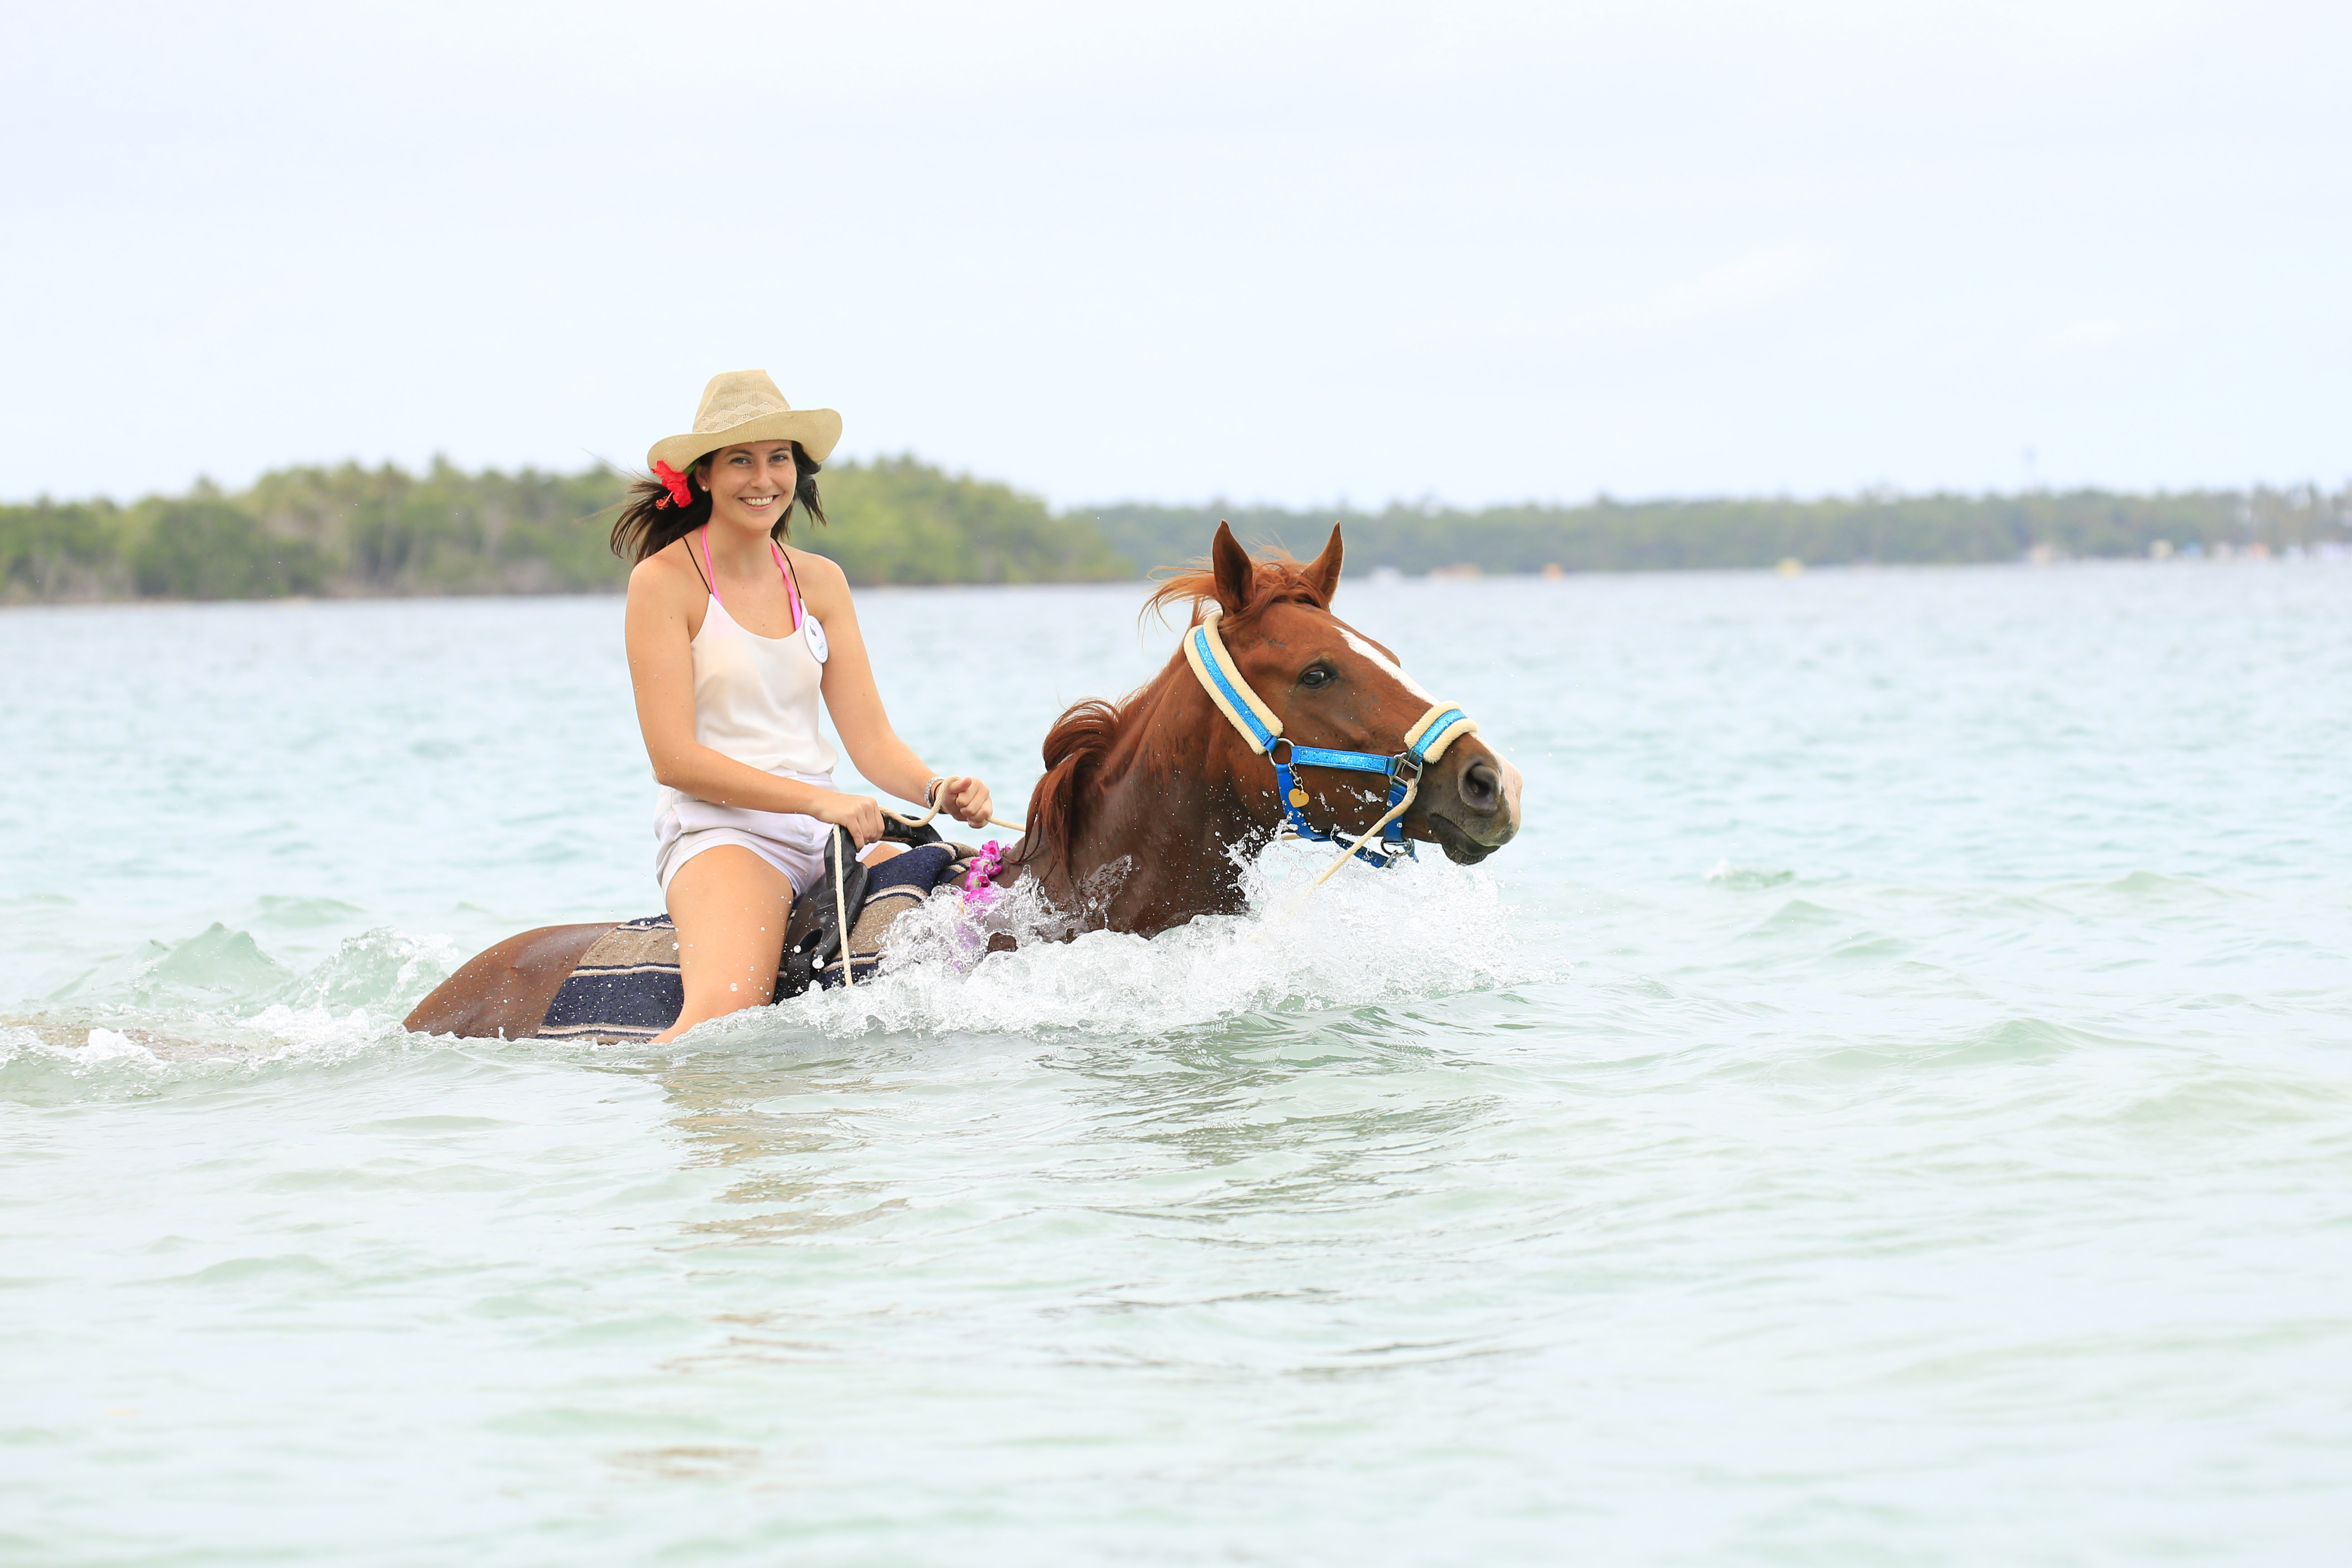 Trinidad and Tobago girl on horse in the water